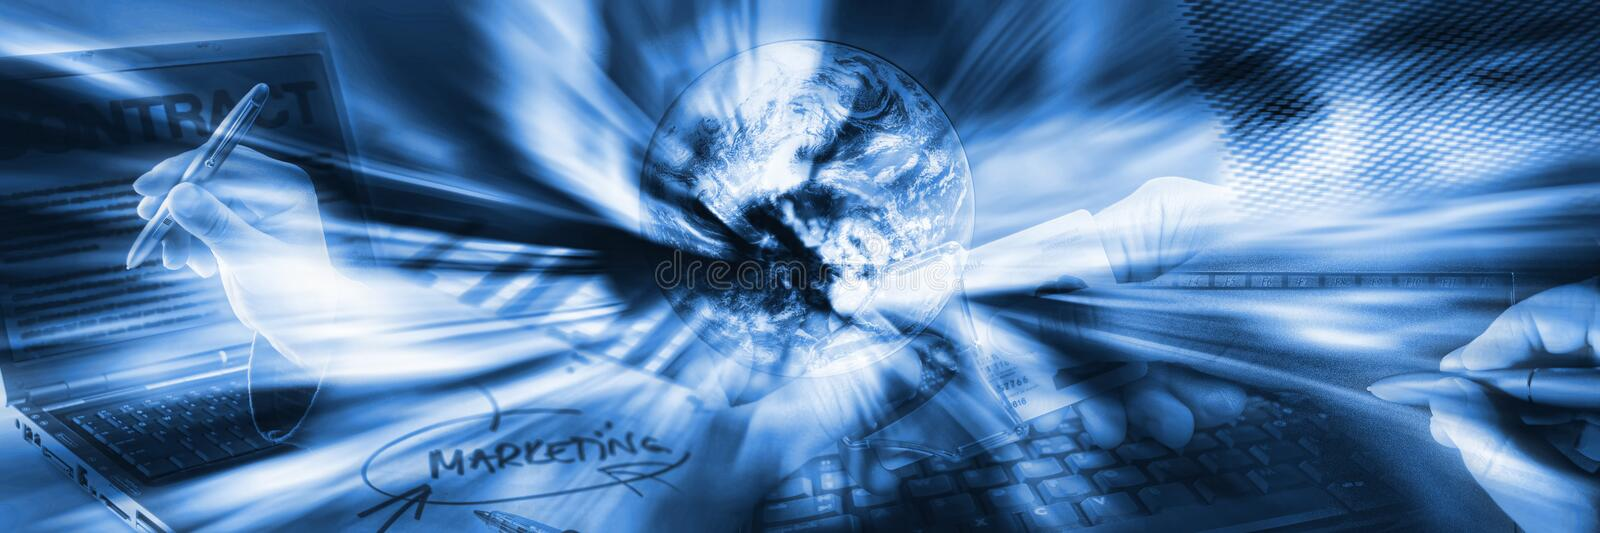 Download Business banner stock illustration. Image of zoom, global - 13858139